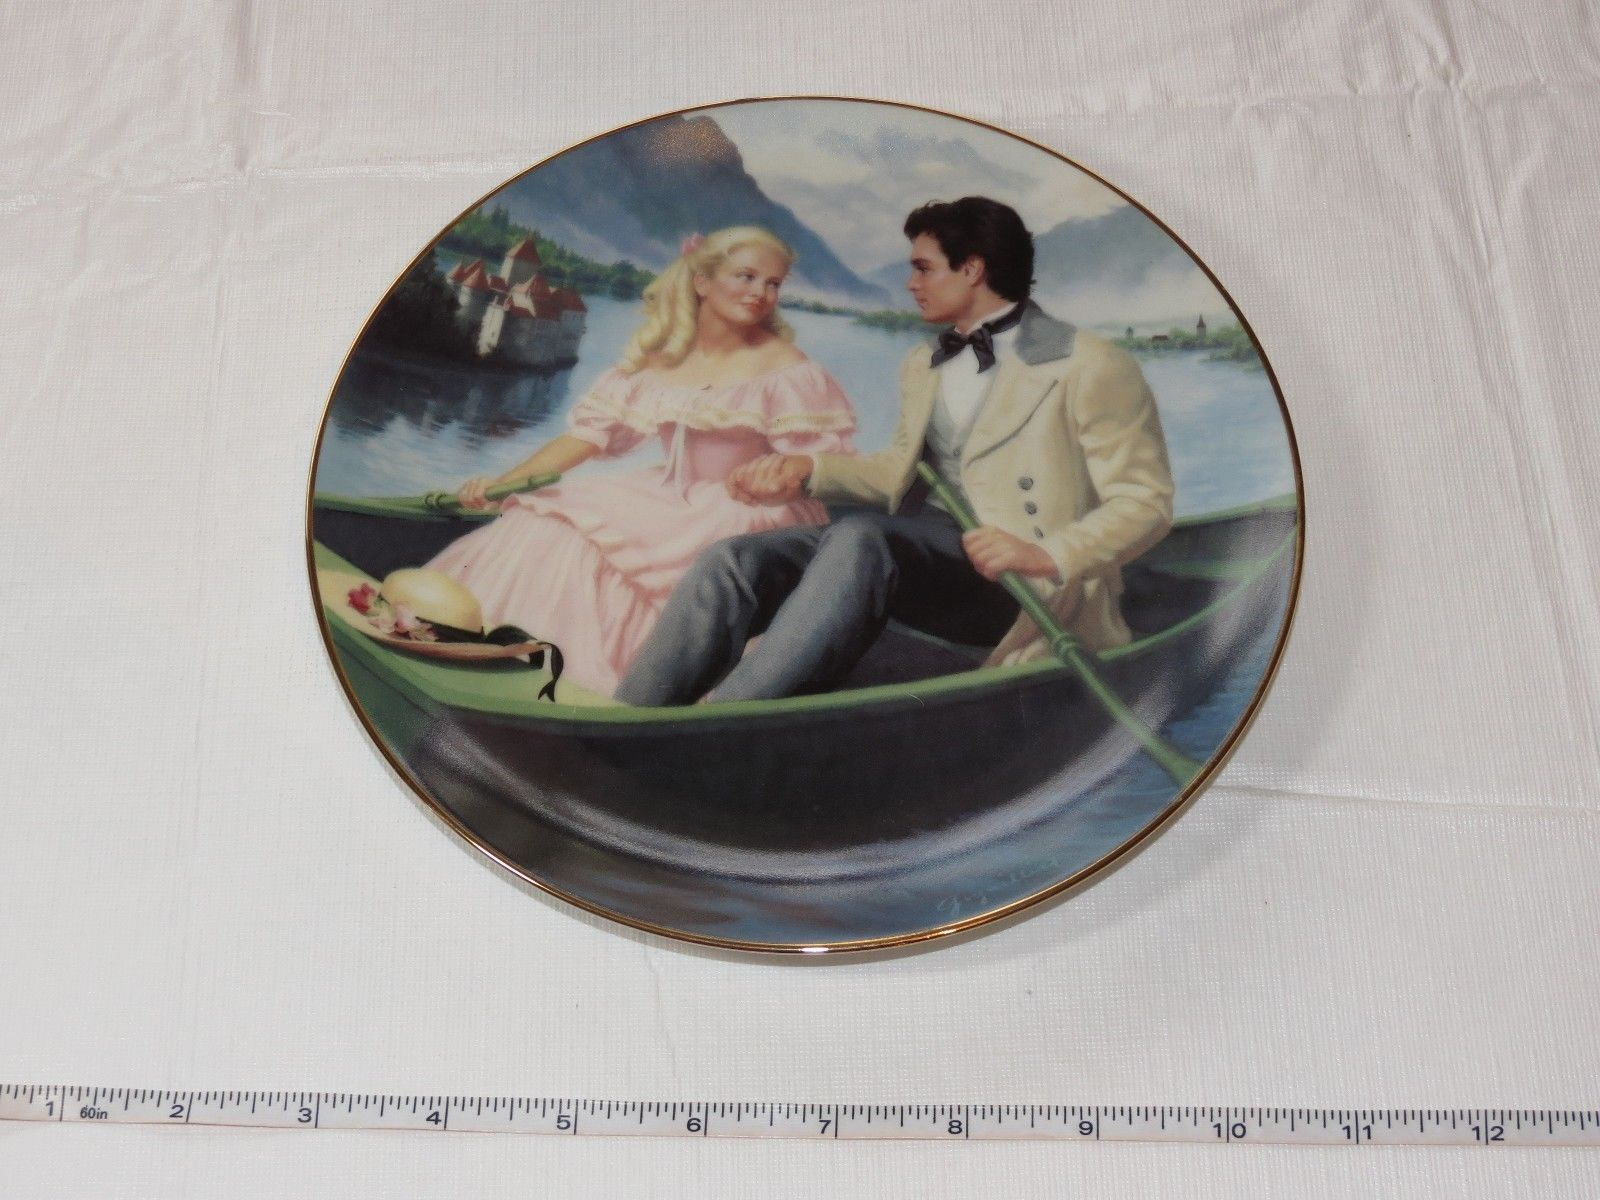 Laurie's Proposal Elaine Gignilliat Little Women Danbury Mint Collector Plate ~ image 2